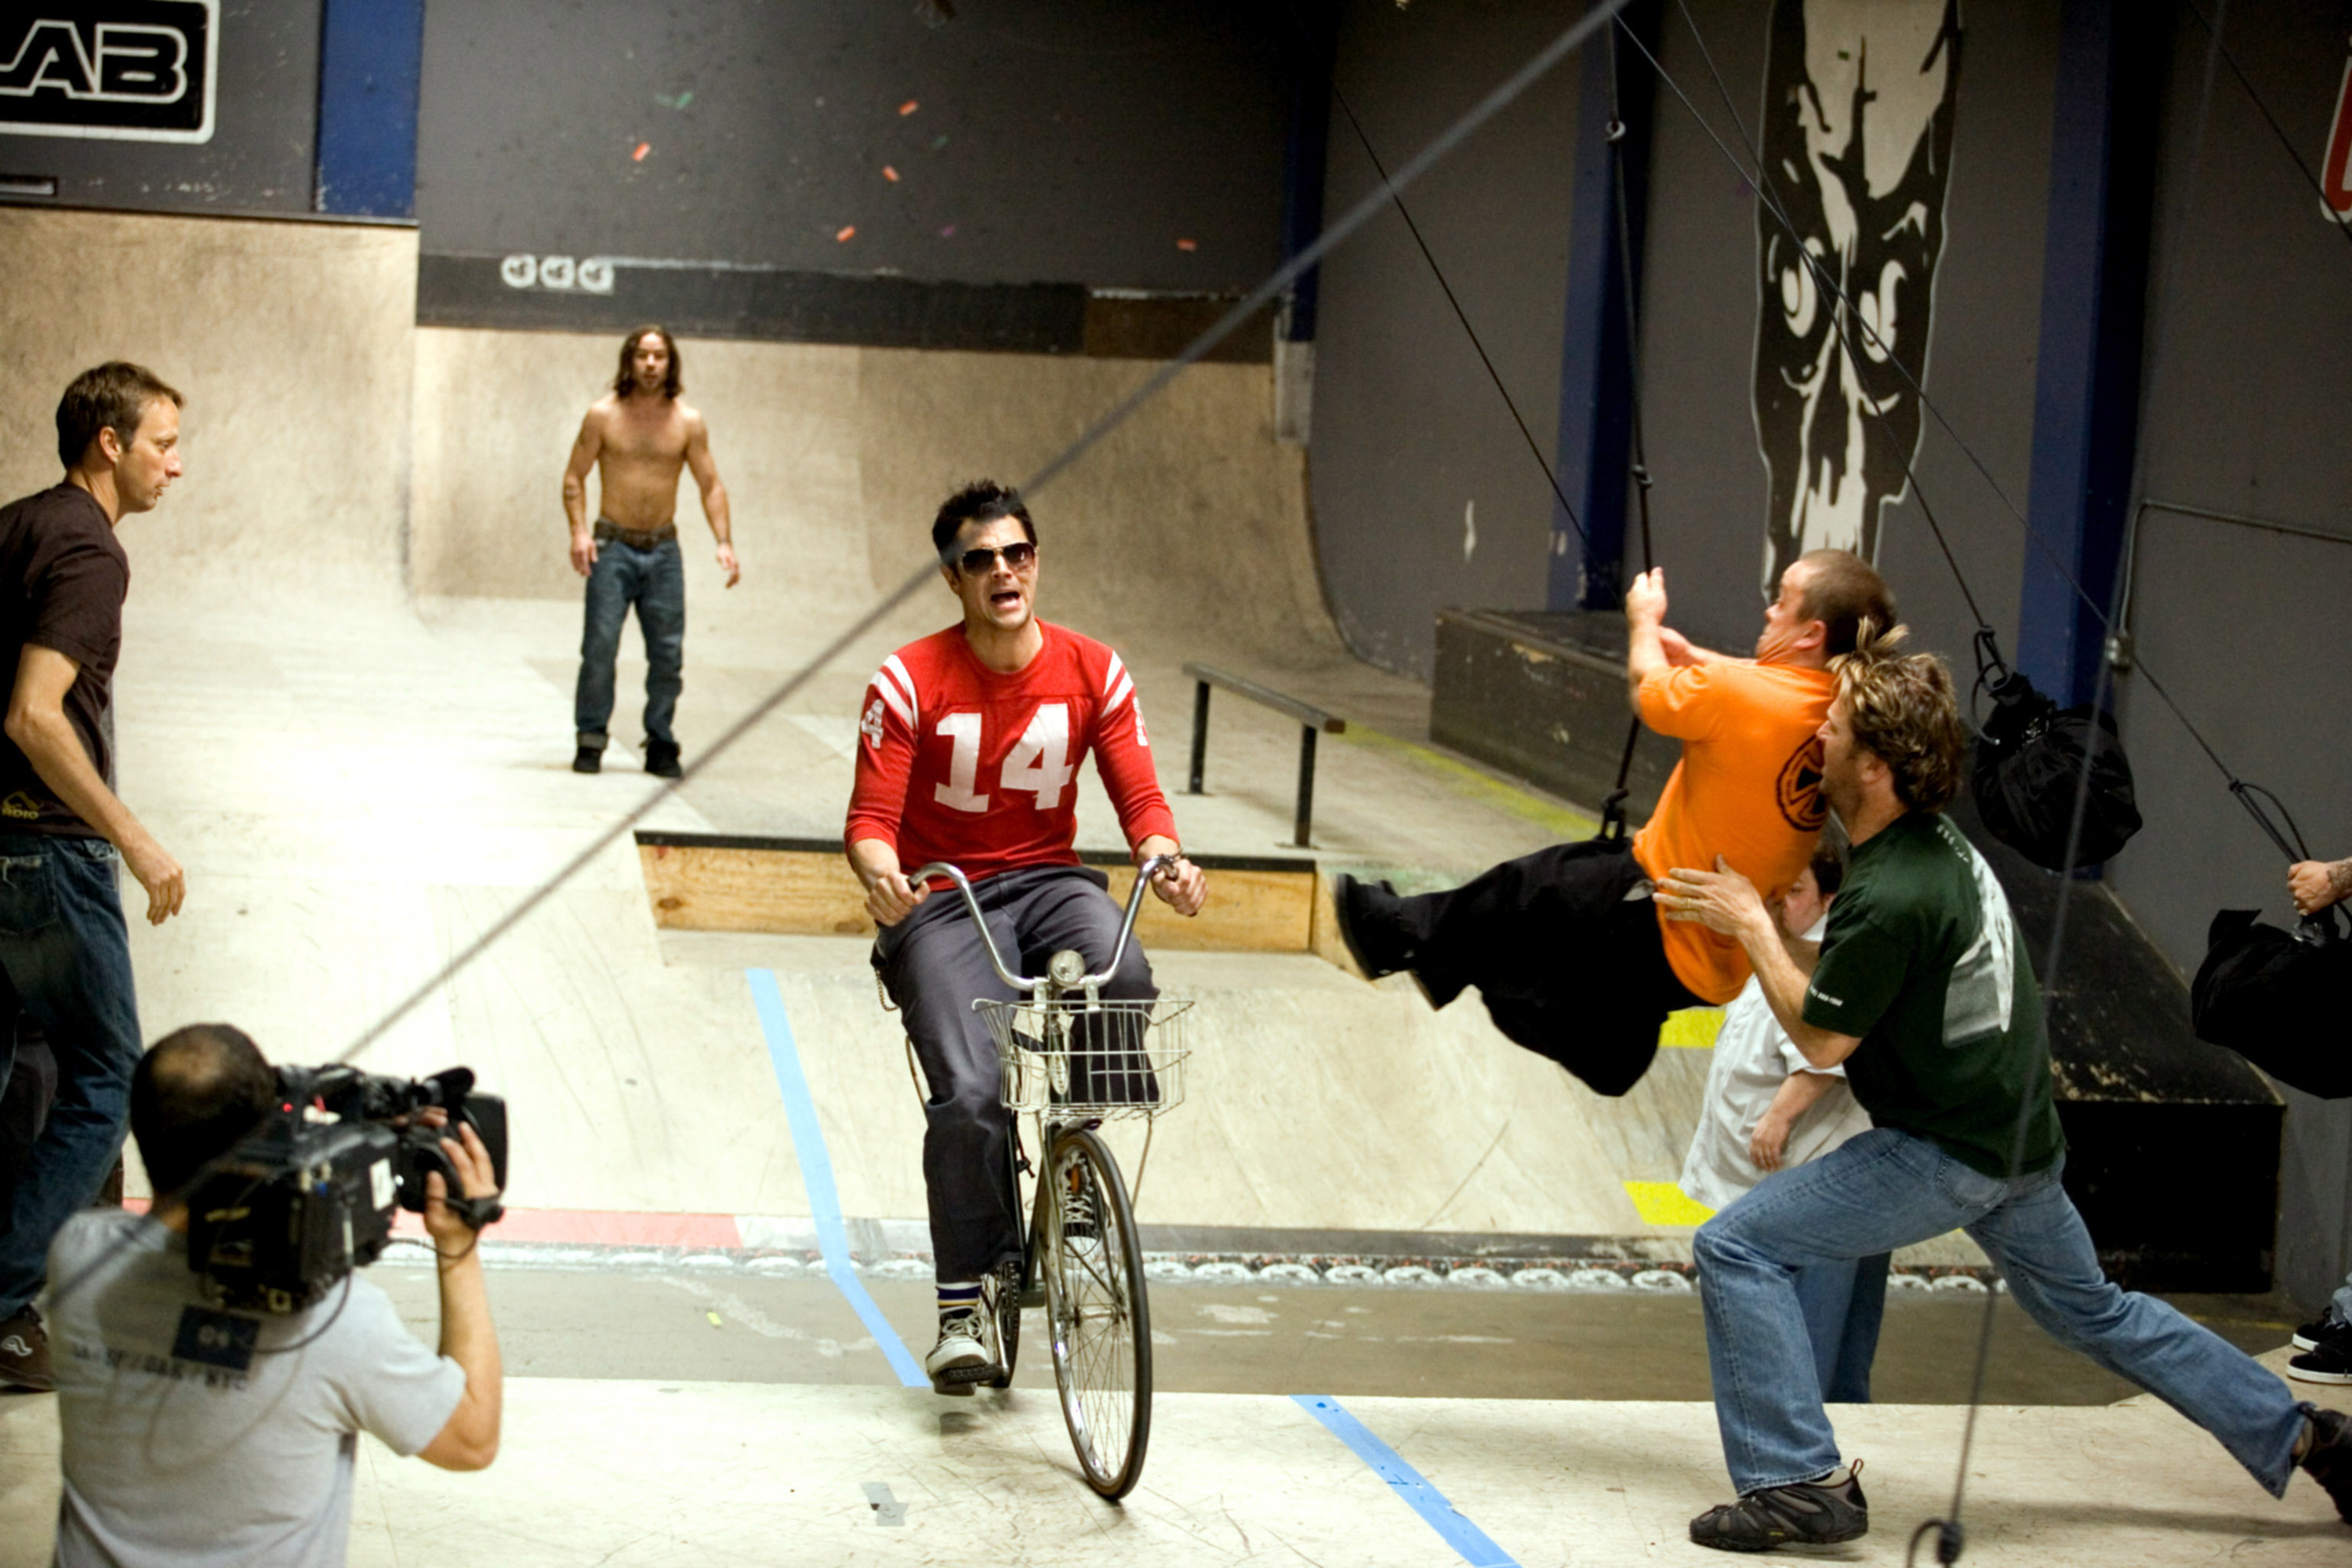 A scene from the second Jackass movie